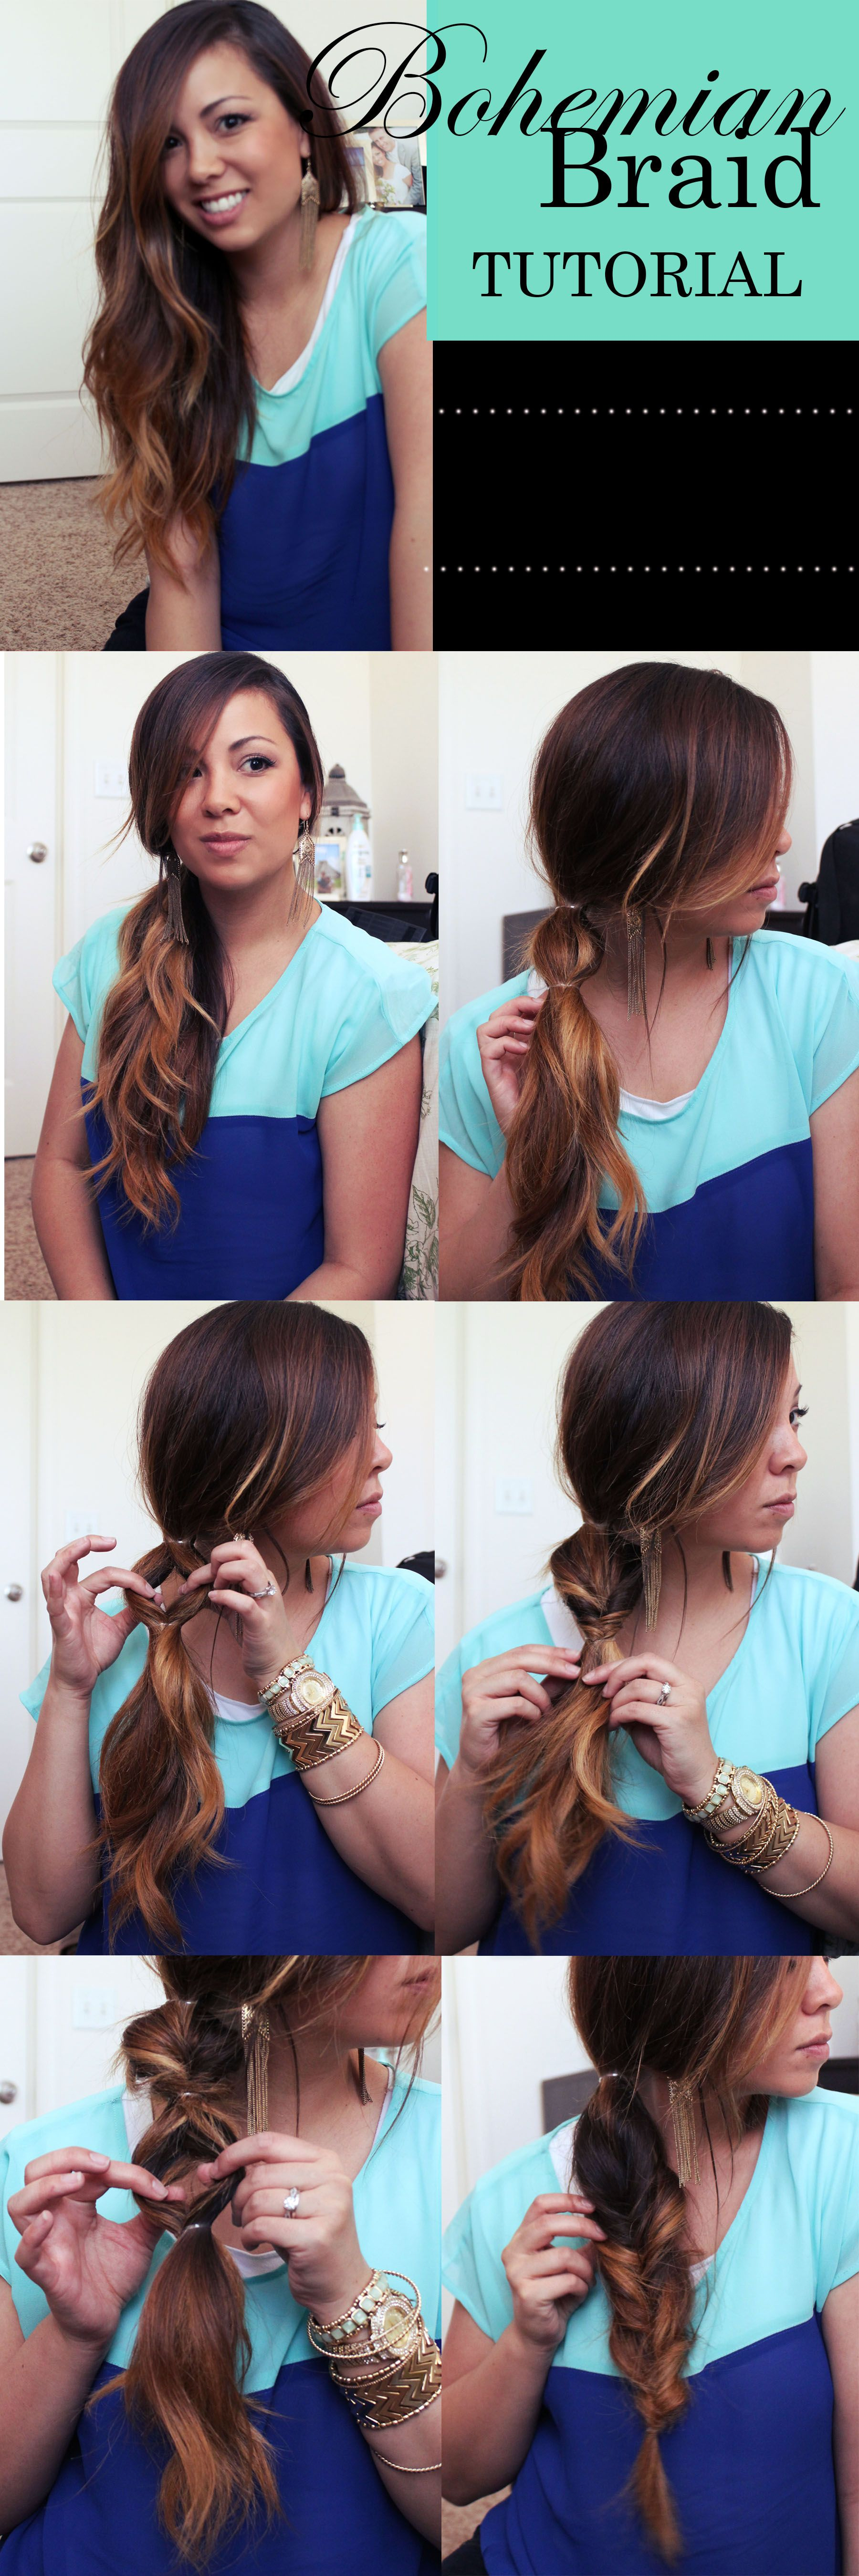 Bohemian braid tutorial helpful tips fold the bottom part of your